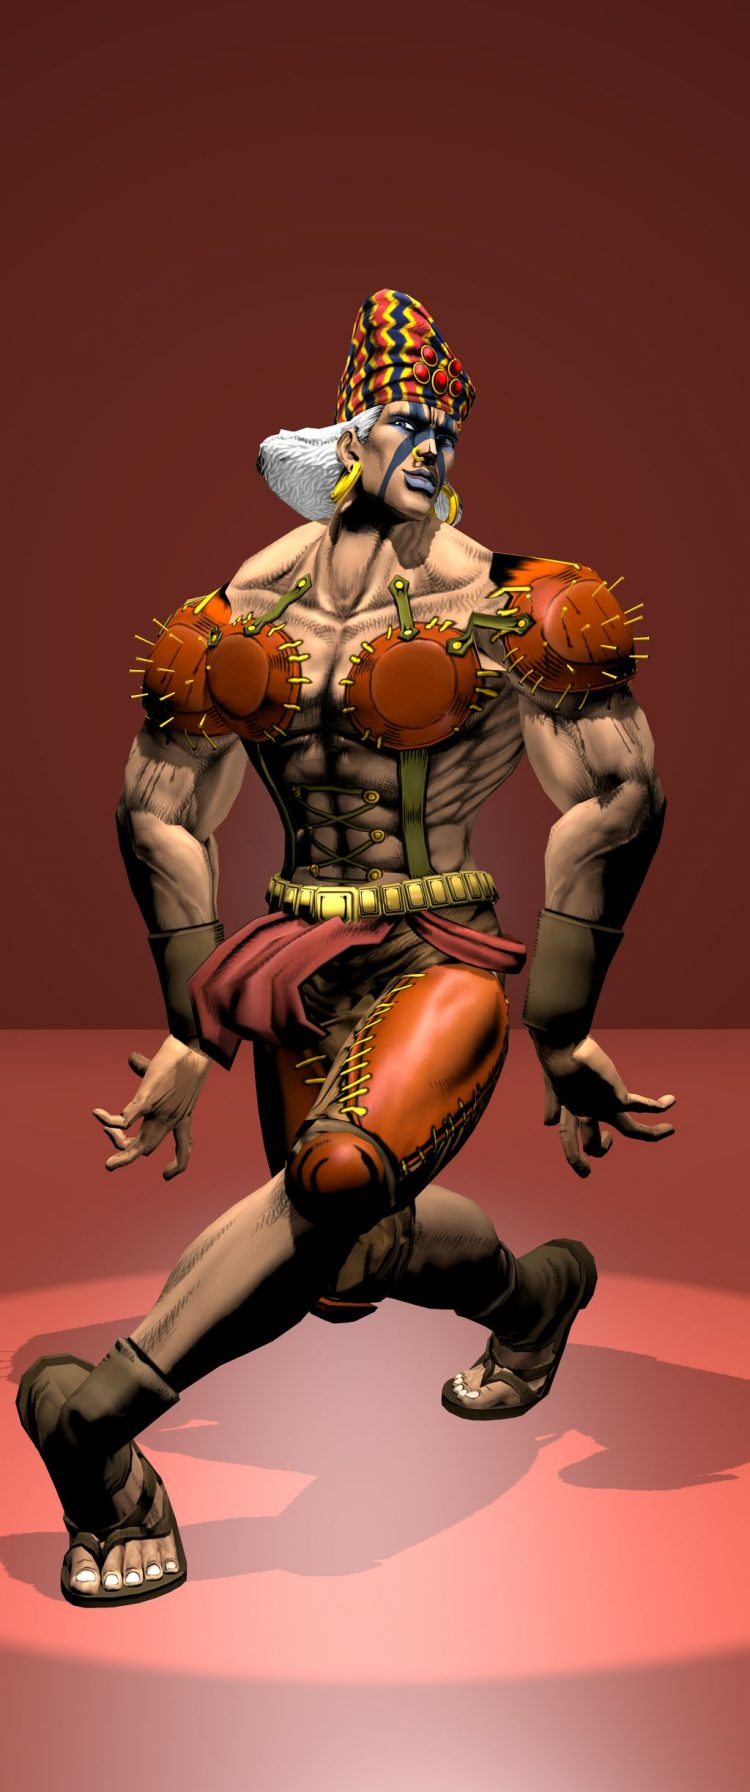 *While Kars was exploring the club, Esidisi was already wowwing the crowds with his peculiar dance m